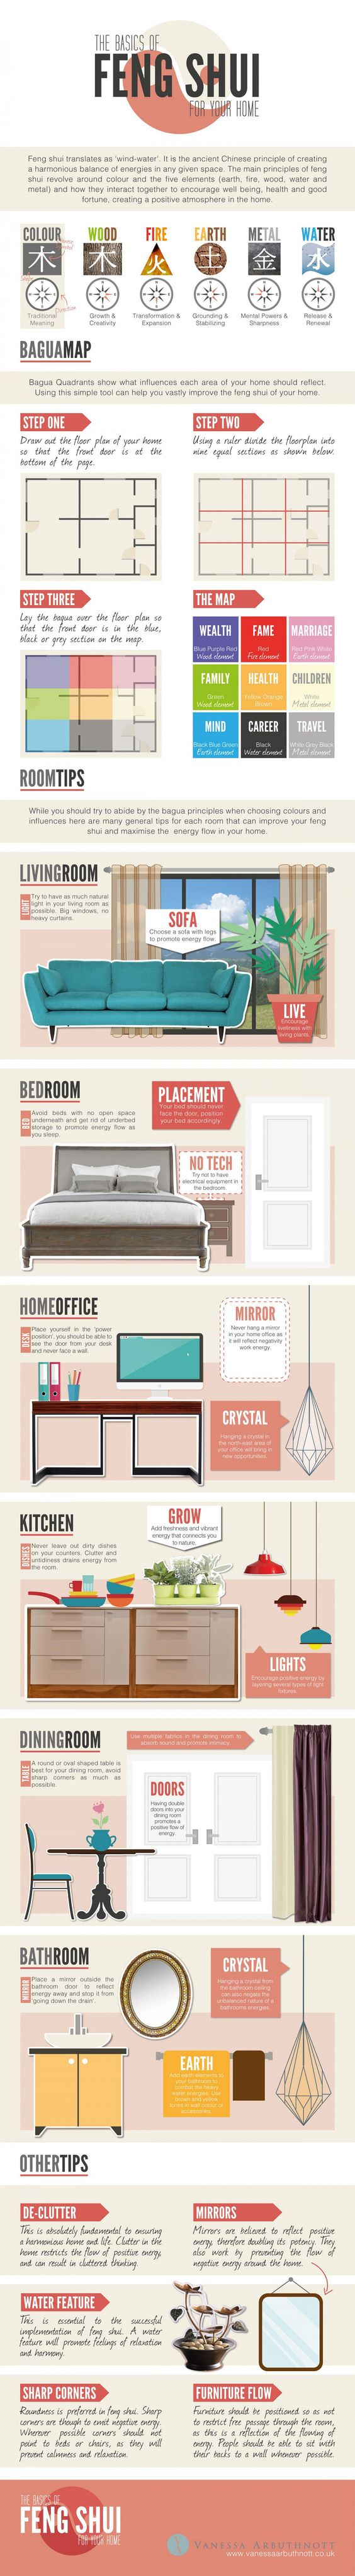 The basics of feng shui for your home infographic for for Basic feng shui principles